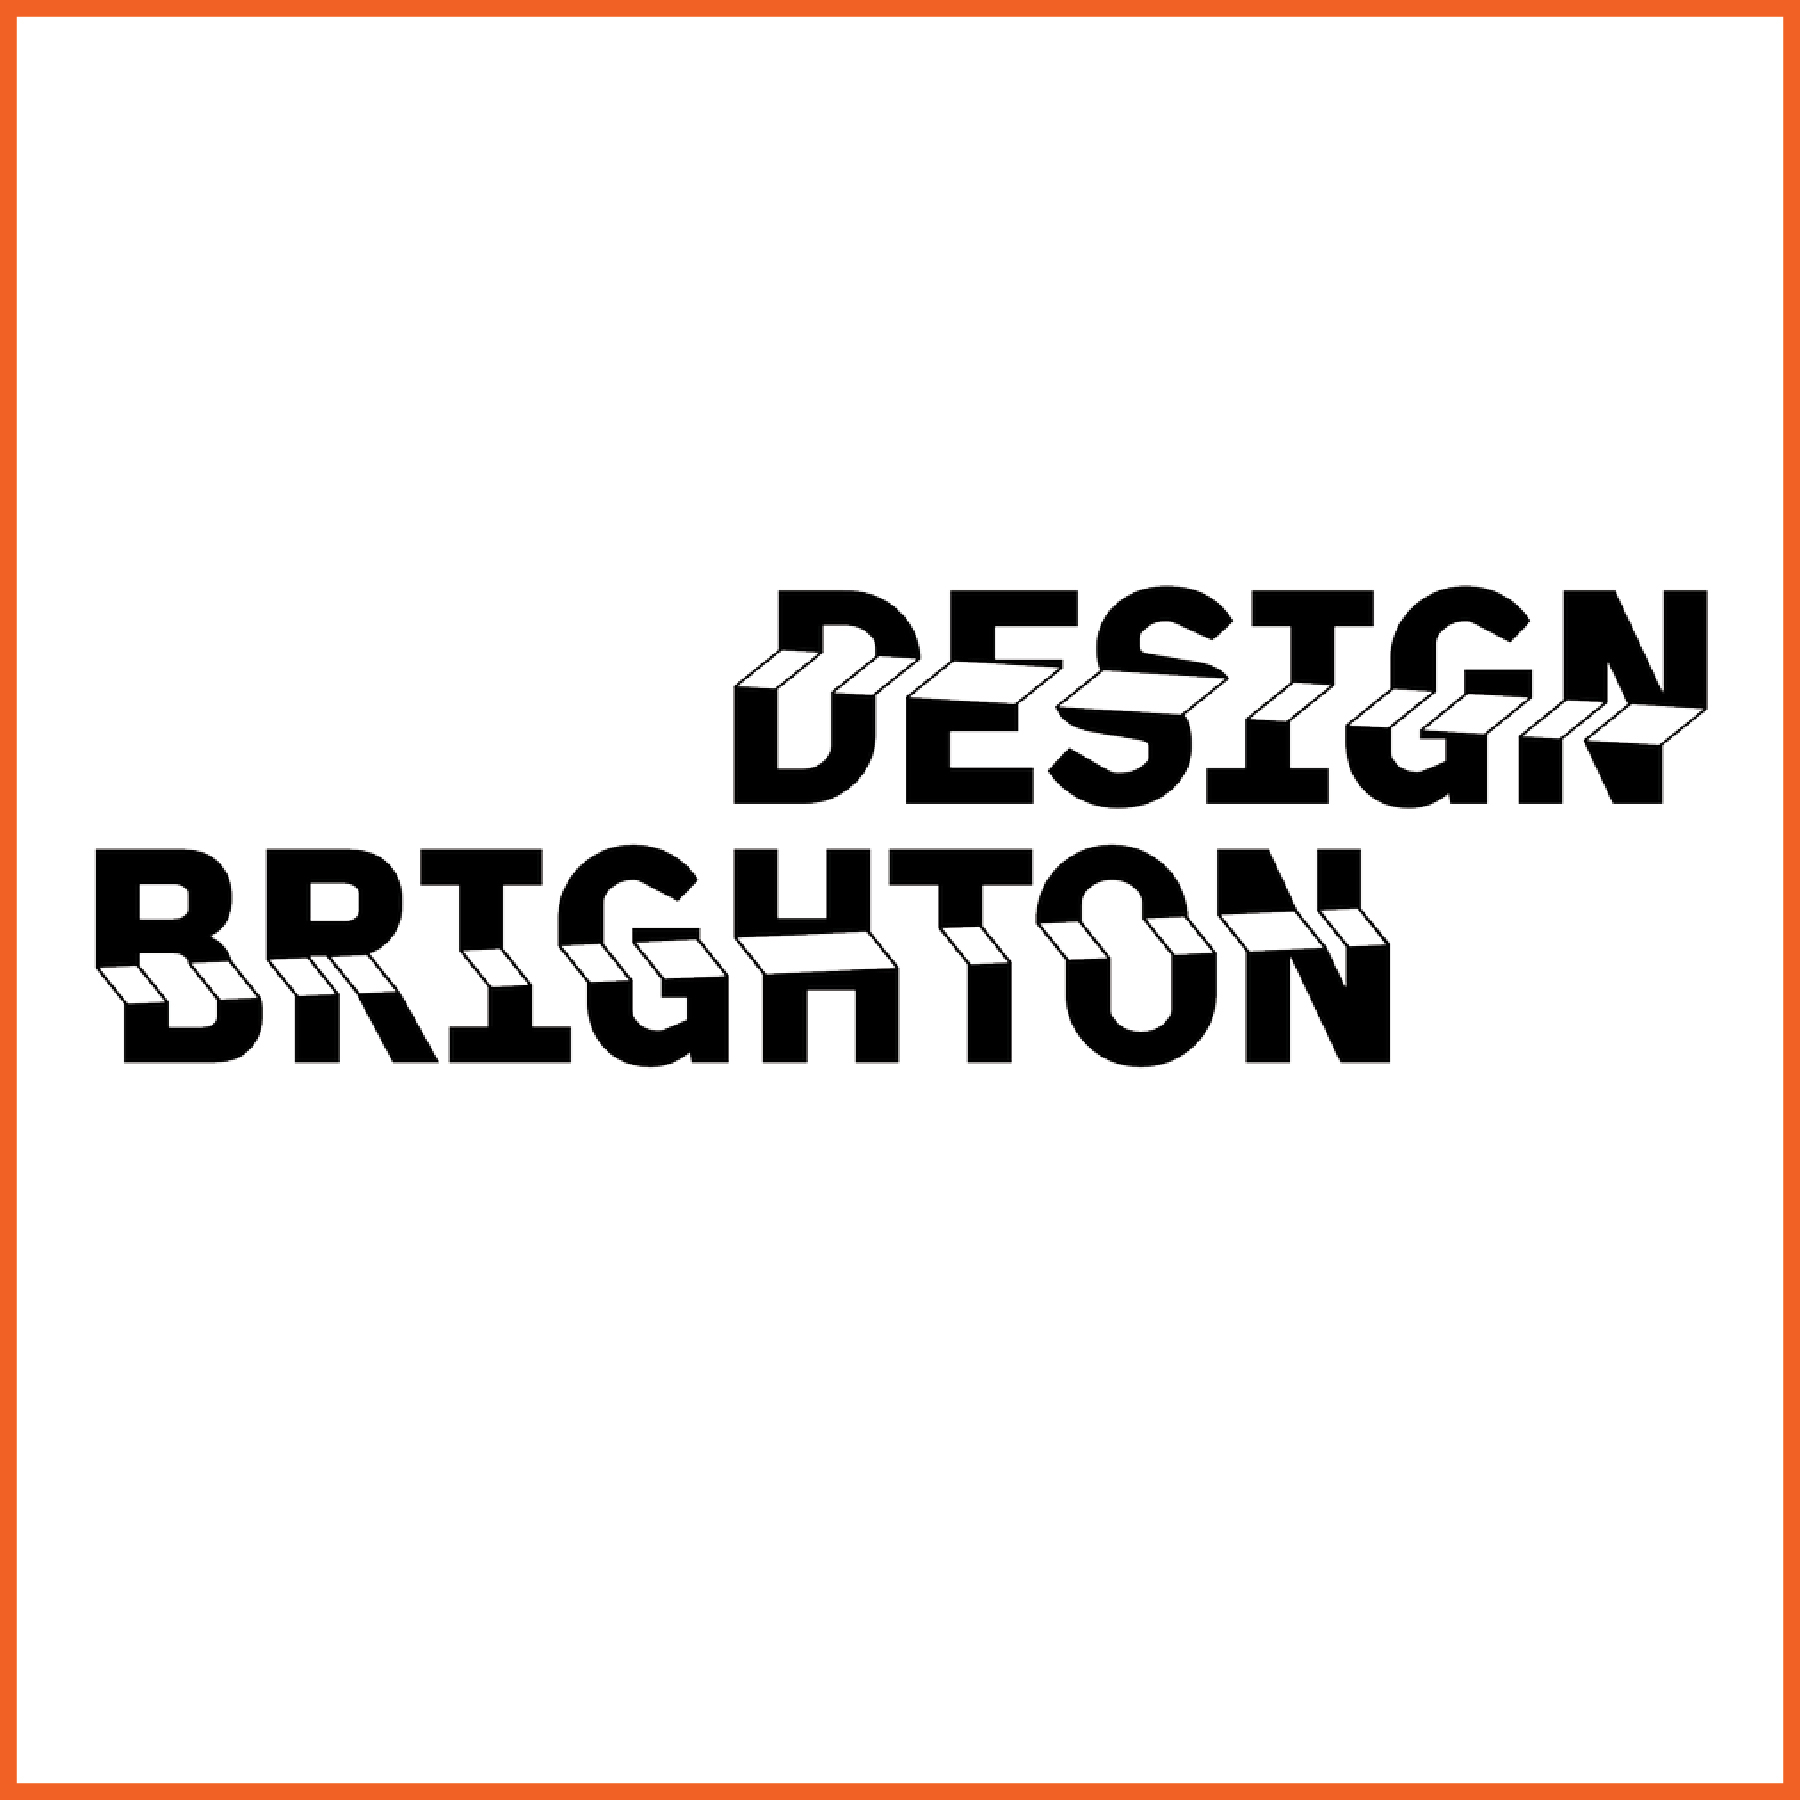 design brighton logo